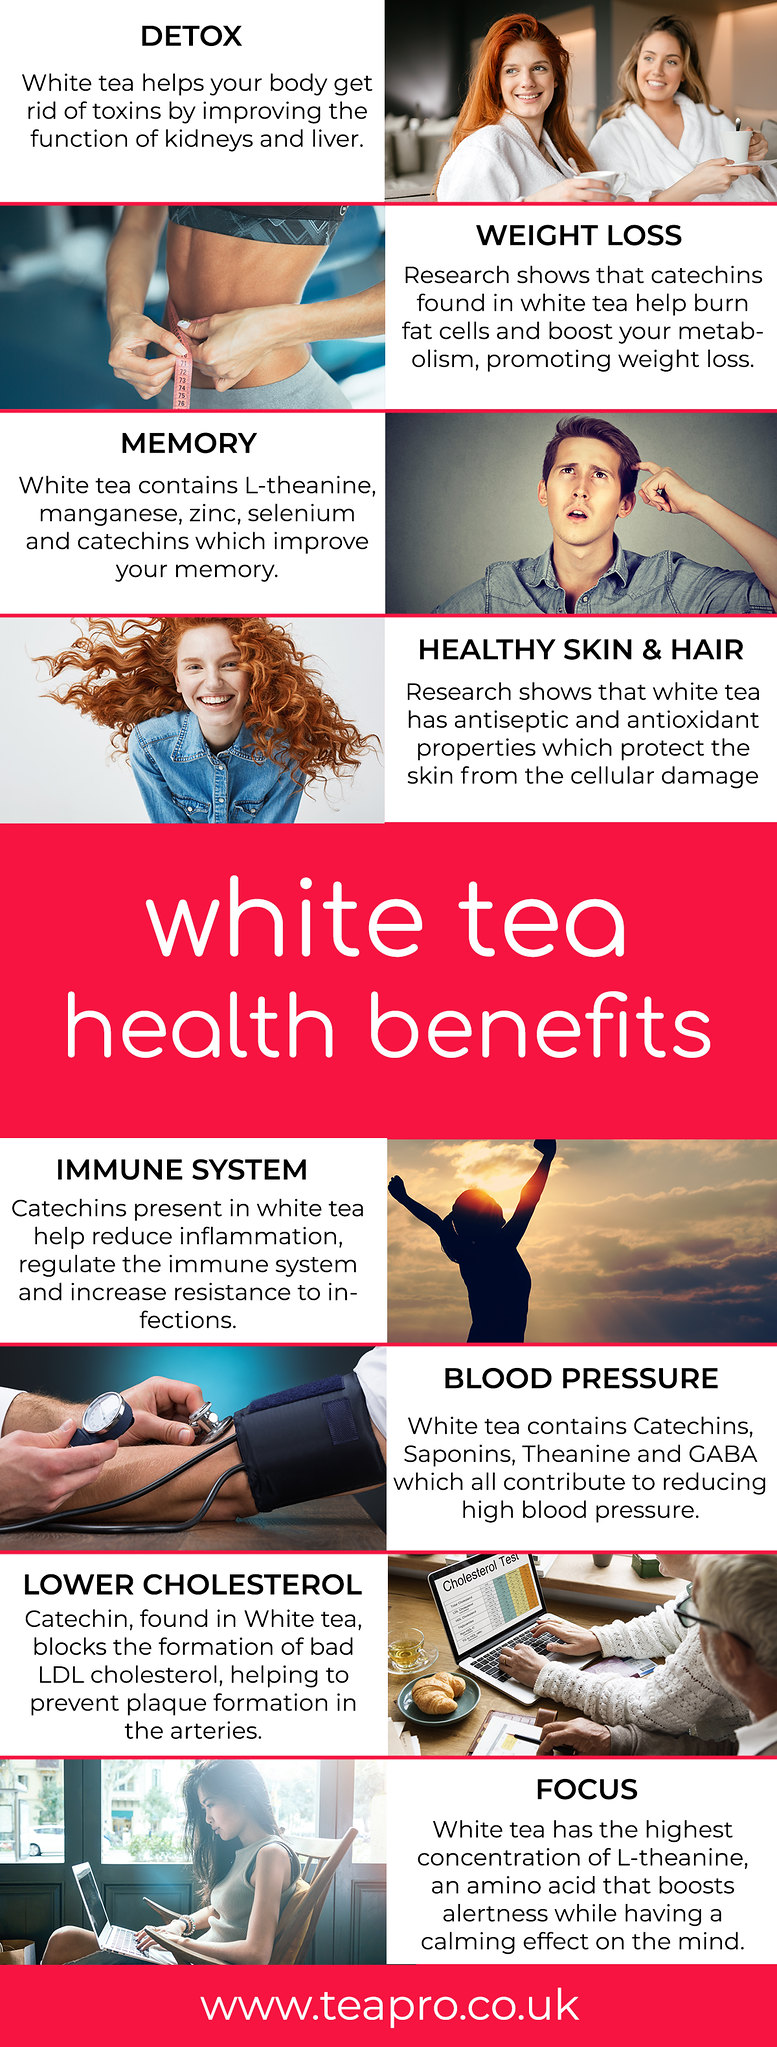 White Tea health benefits by Teapro